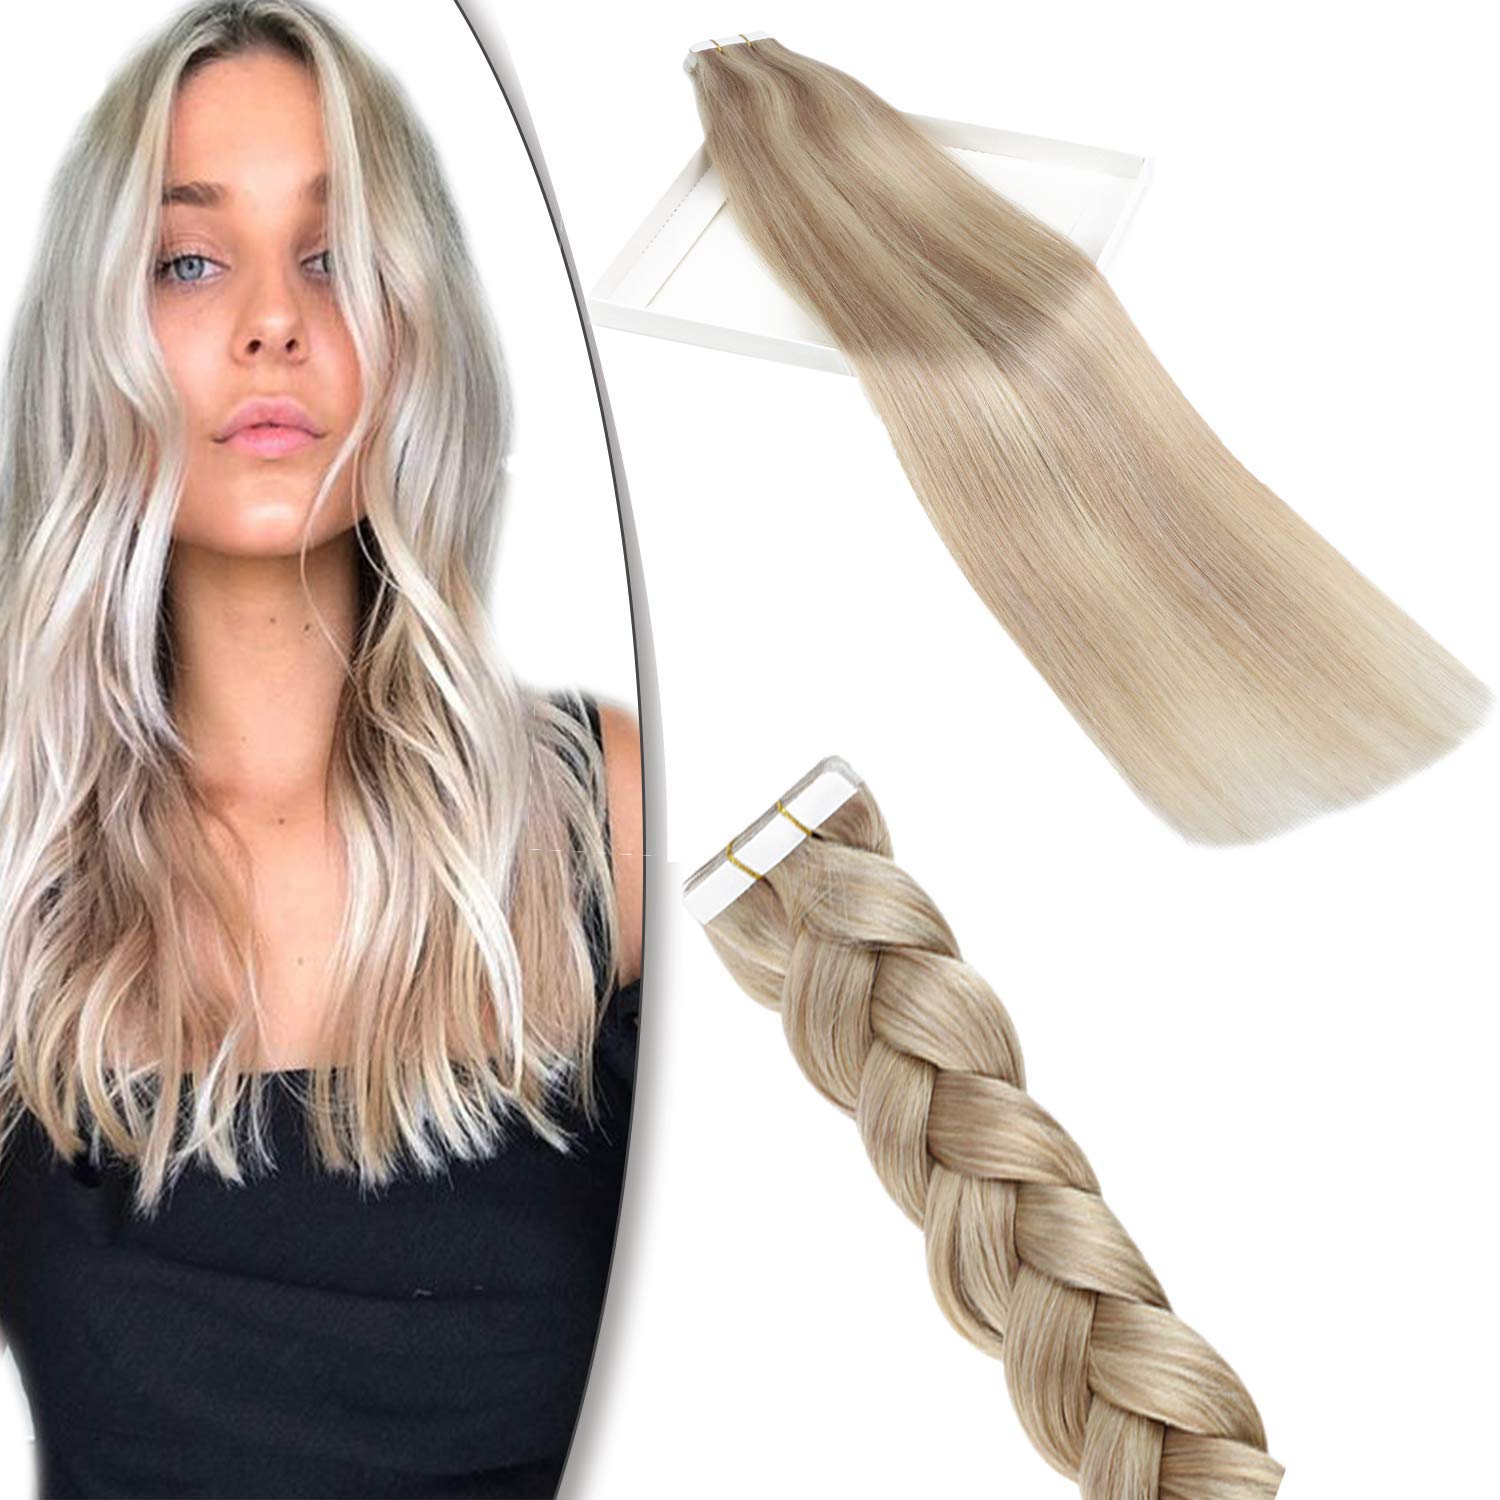 YoungSee Blonde Highlight Tape in Hair Extensions Ash Blonde with Bleach Blonde Double Sided Remy Glue in Human Hair Extensions 16 Inch 10pcs 25g